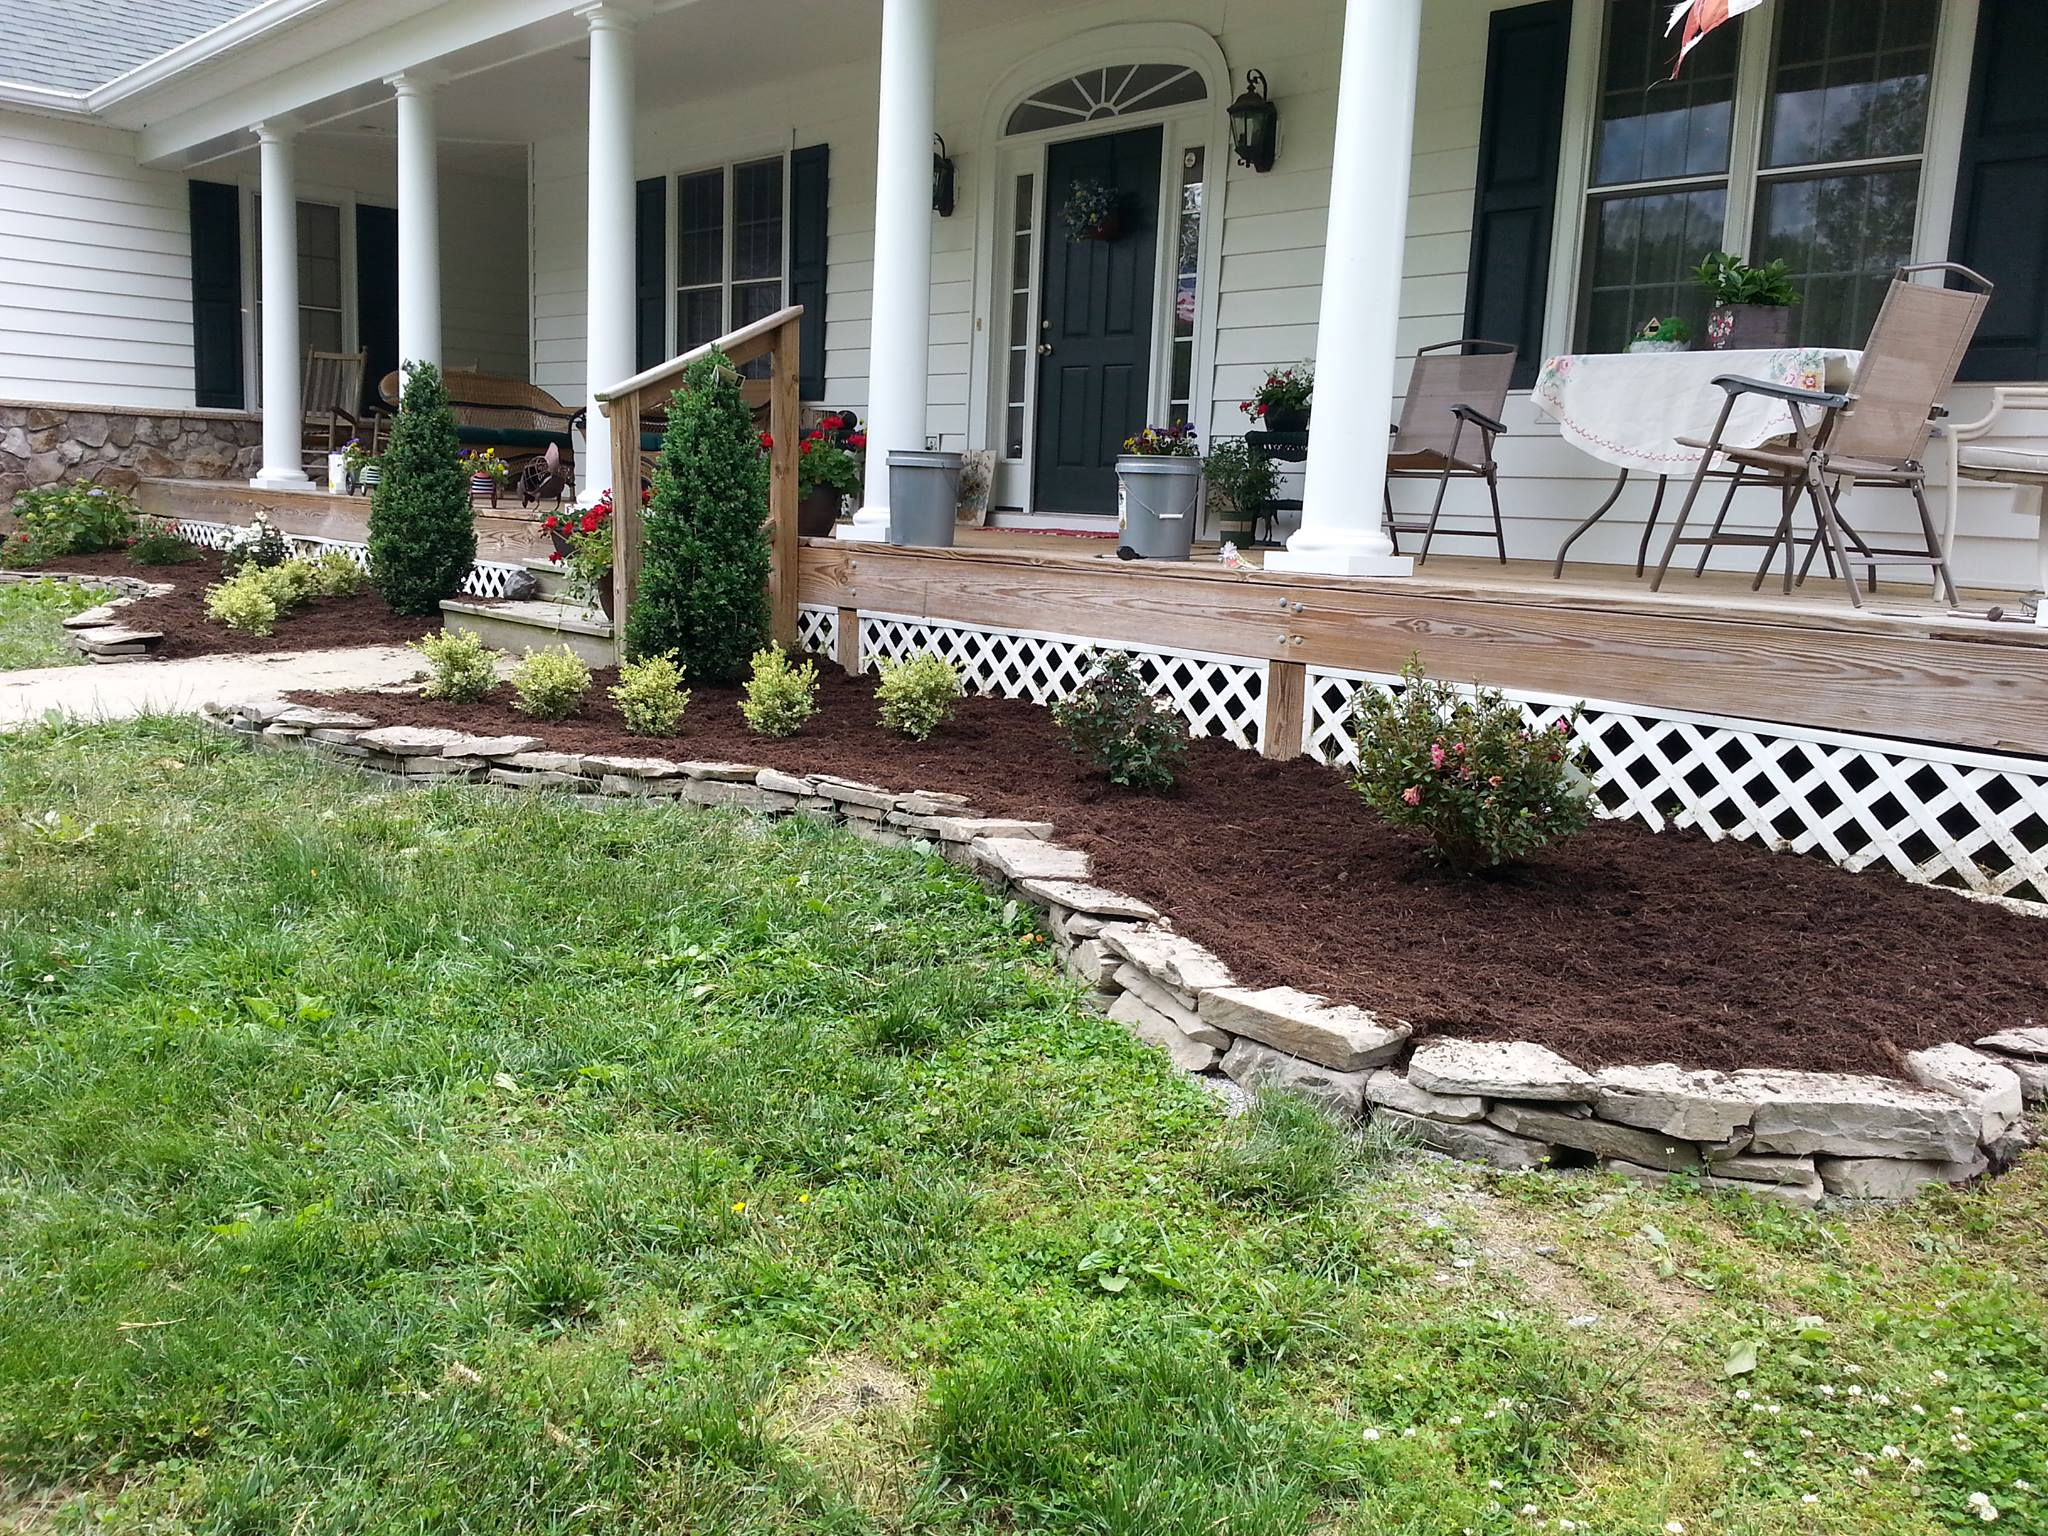 Newly installed landscape in front of a house